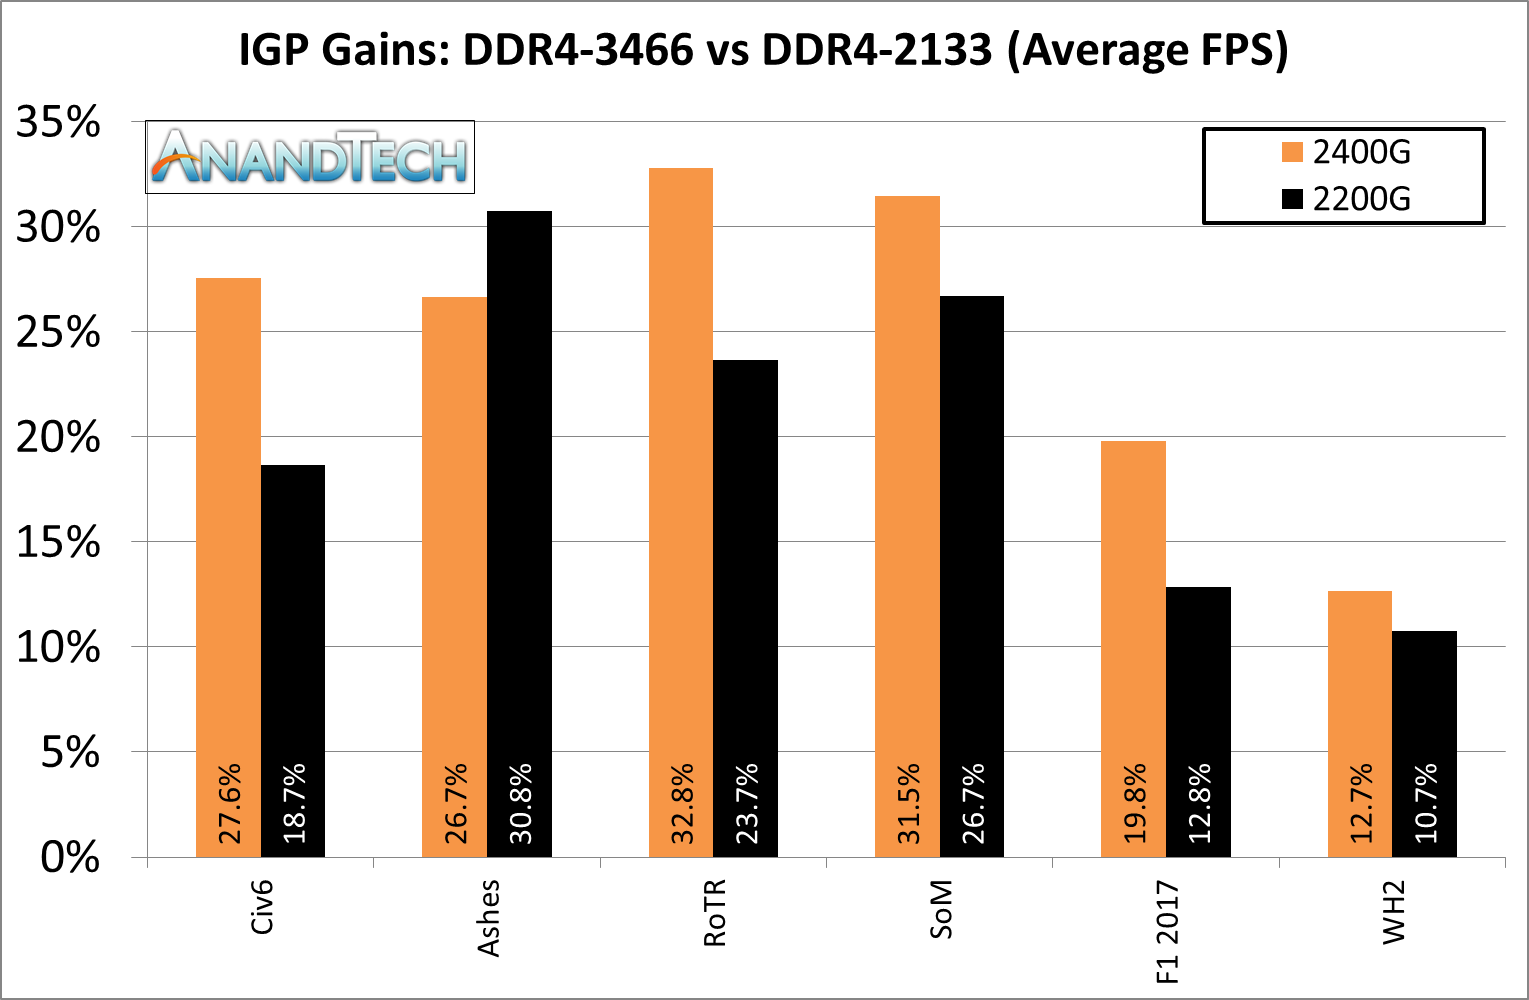 Conclusions on Ryzen APU DDR4 Scaling - Zen and Vega DDR4